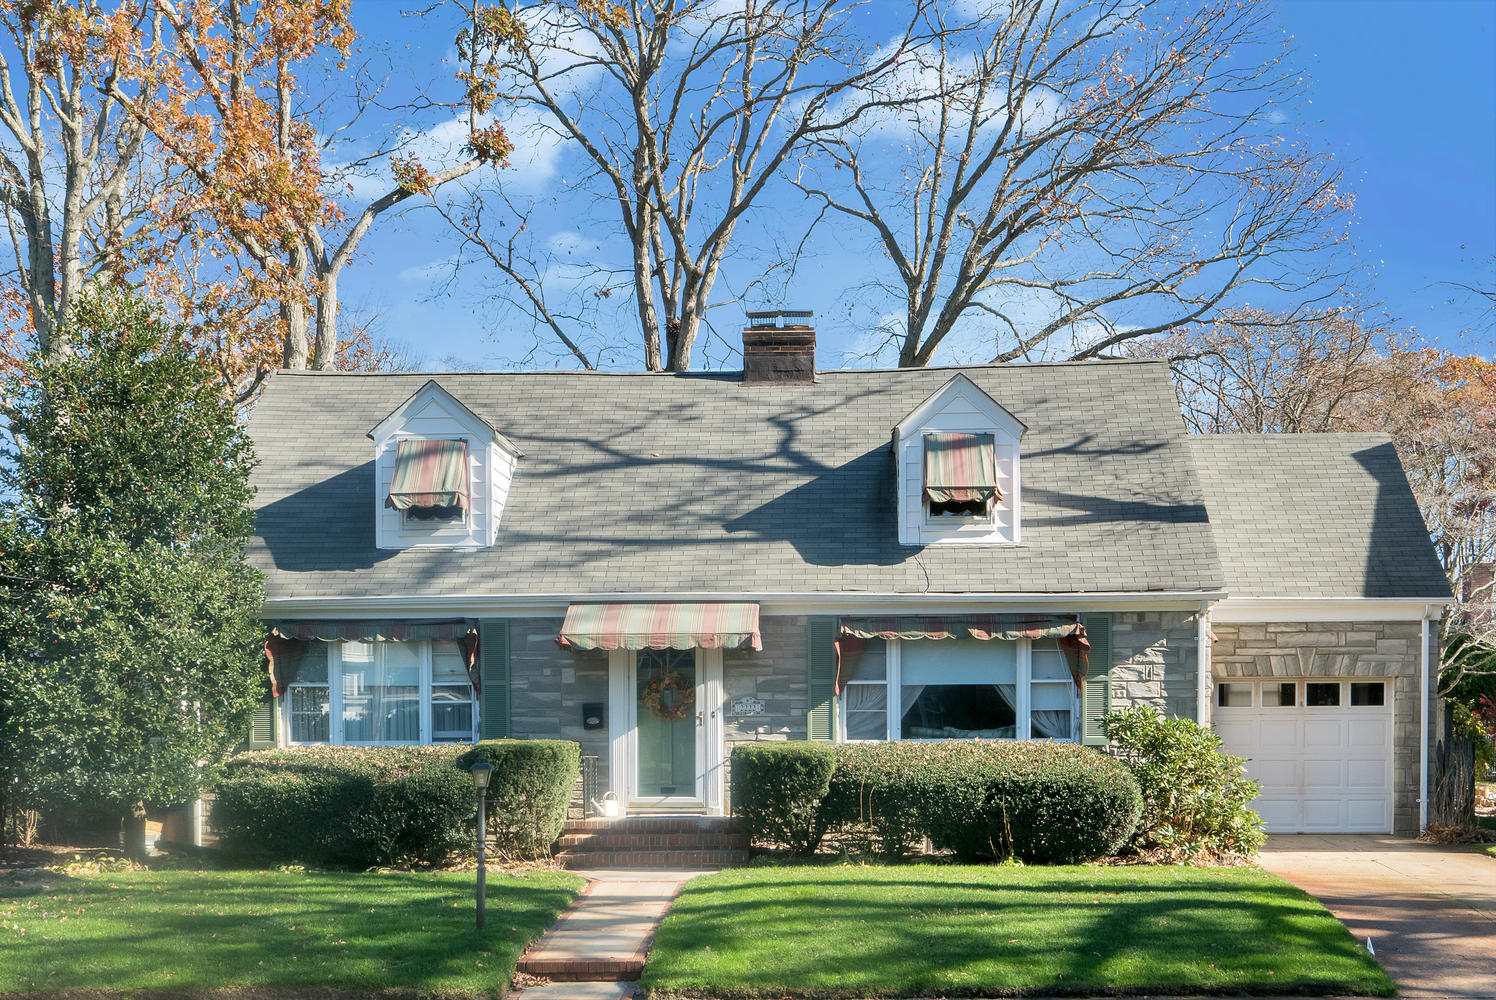 Casa Unifamiliar por un Venta en Charming North End Cape! 2222 2nd Avenue Spring Lake, Nueva Jersey, 07762 Estados Unidos